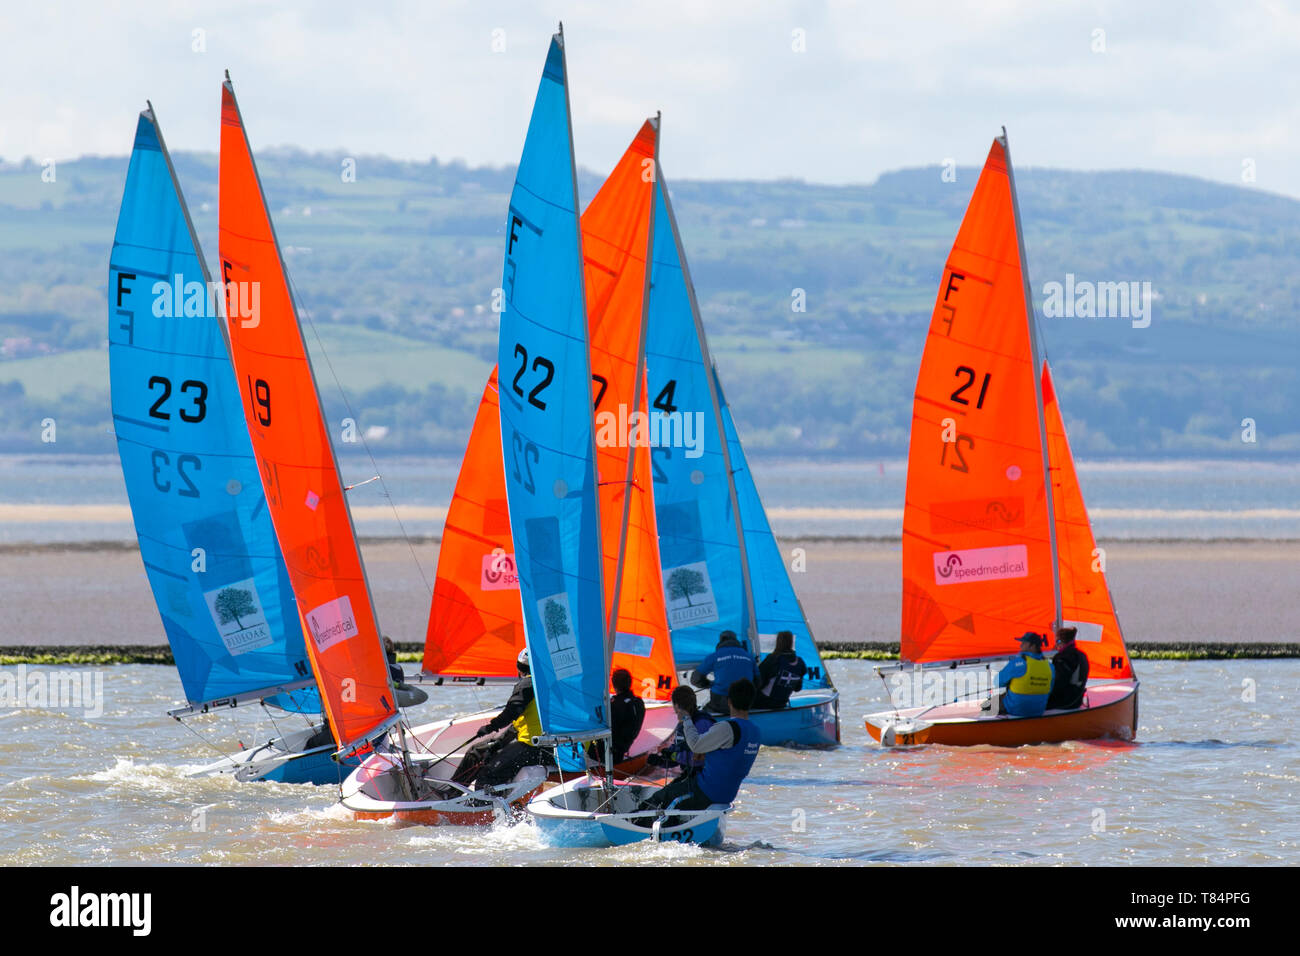 West Kirby, Liverpool, UK. 11th May, 2019. British Open Team Racing Championships Trophy Sailing's Premier League 'The Wilson Trophy' 200. The maximum number of teams has been increased to 36. The 2019 event features 5 American teams, 2 Irish, 1 Australian and making their debut appearance Team Austria. Rounding out the field will be 27 British teams, including defending champions, the West Kirby Hawks. Recent winners also returning are West Exempt, Royal Forth Hoosiers, and Birdham Bandits. Credit: MediaWorldImages/Alamy Live News - Stock Image